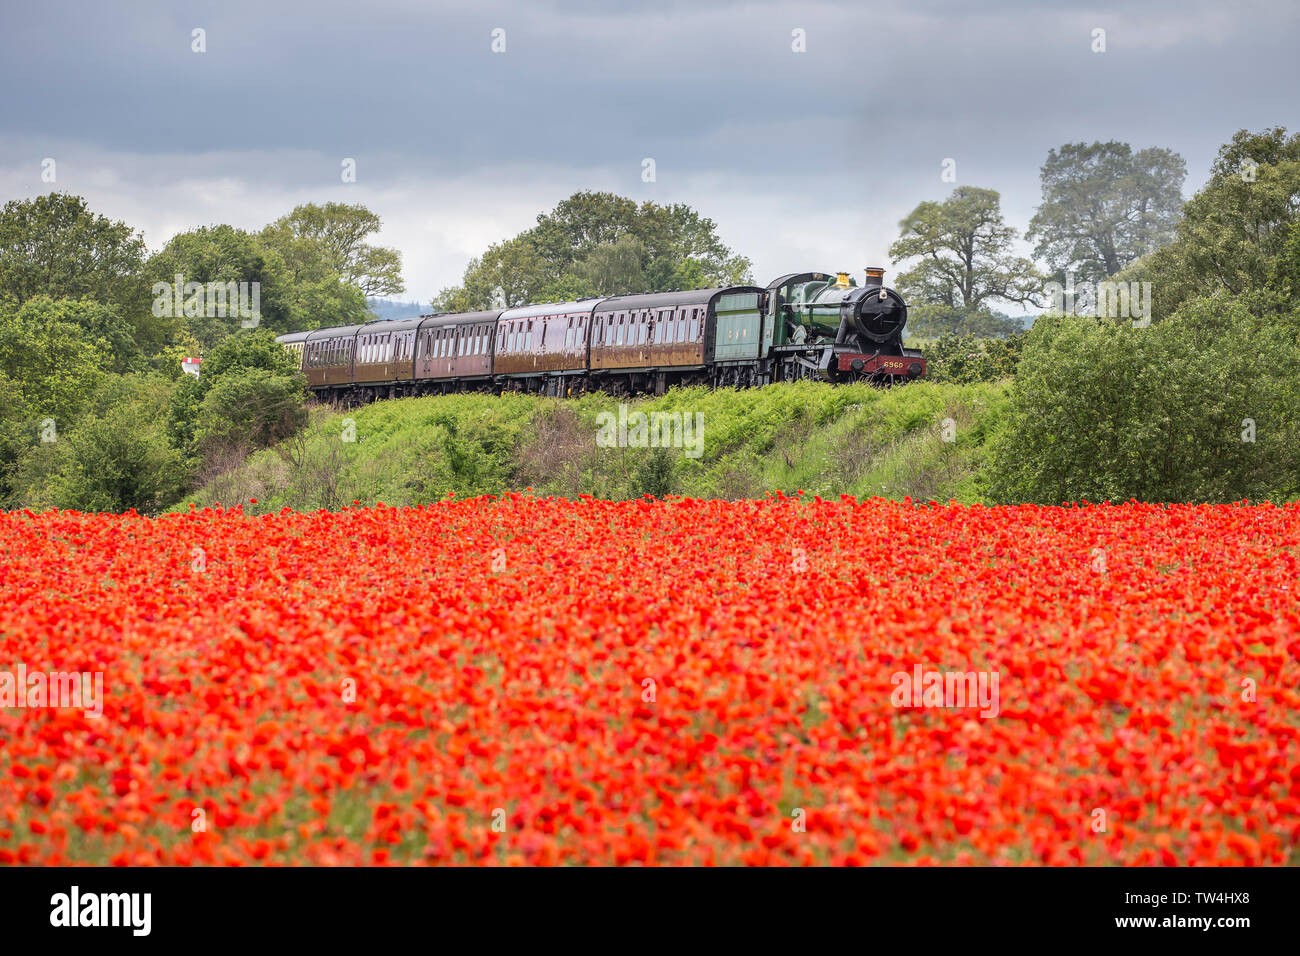 Vintage UK steam train, front, passing through beautiful English countryside. British landscape scene with meadow of wild, red poppies in foreground. - Stock Image